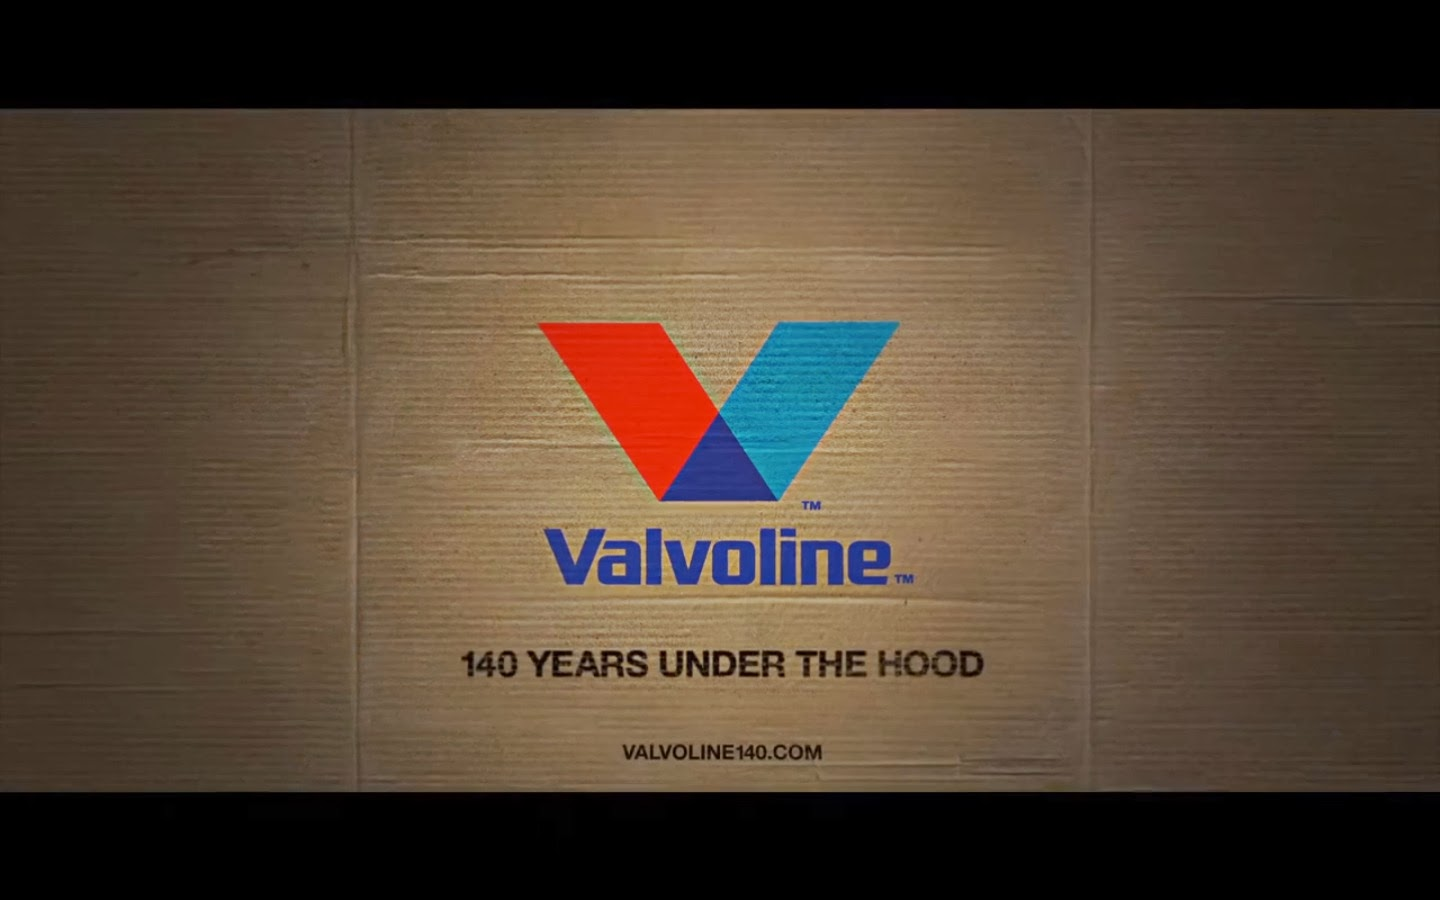 Valvoline video series Under the Hood Episode 1 Tim Odell of 1440x900